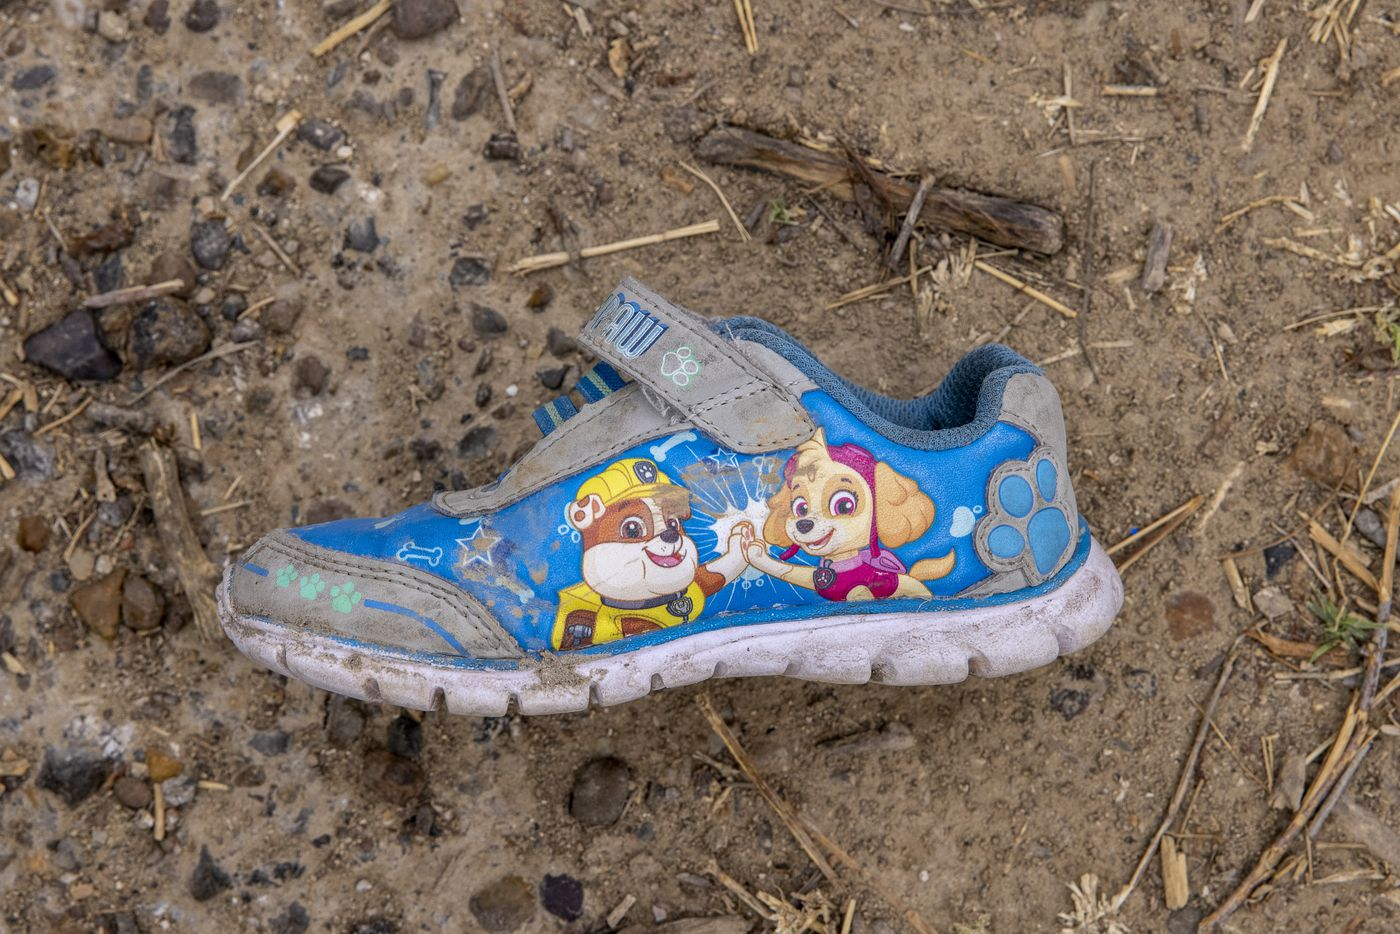 A single abandoned child's shoe is among the belongings left behind by migrants in the rural back roads of Roma, Texas, on Tuesday, March 30, 2021. The city has become a prime site for migrants crossing the Rio Grande river into the United States. A spike in the number of immigrants, from families to single adults to minors crossing the border alone, is expected to push border crossings to a 20-year record, says Homeland Security Secretary Alejandro Mayorkas of the new Biden administration.